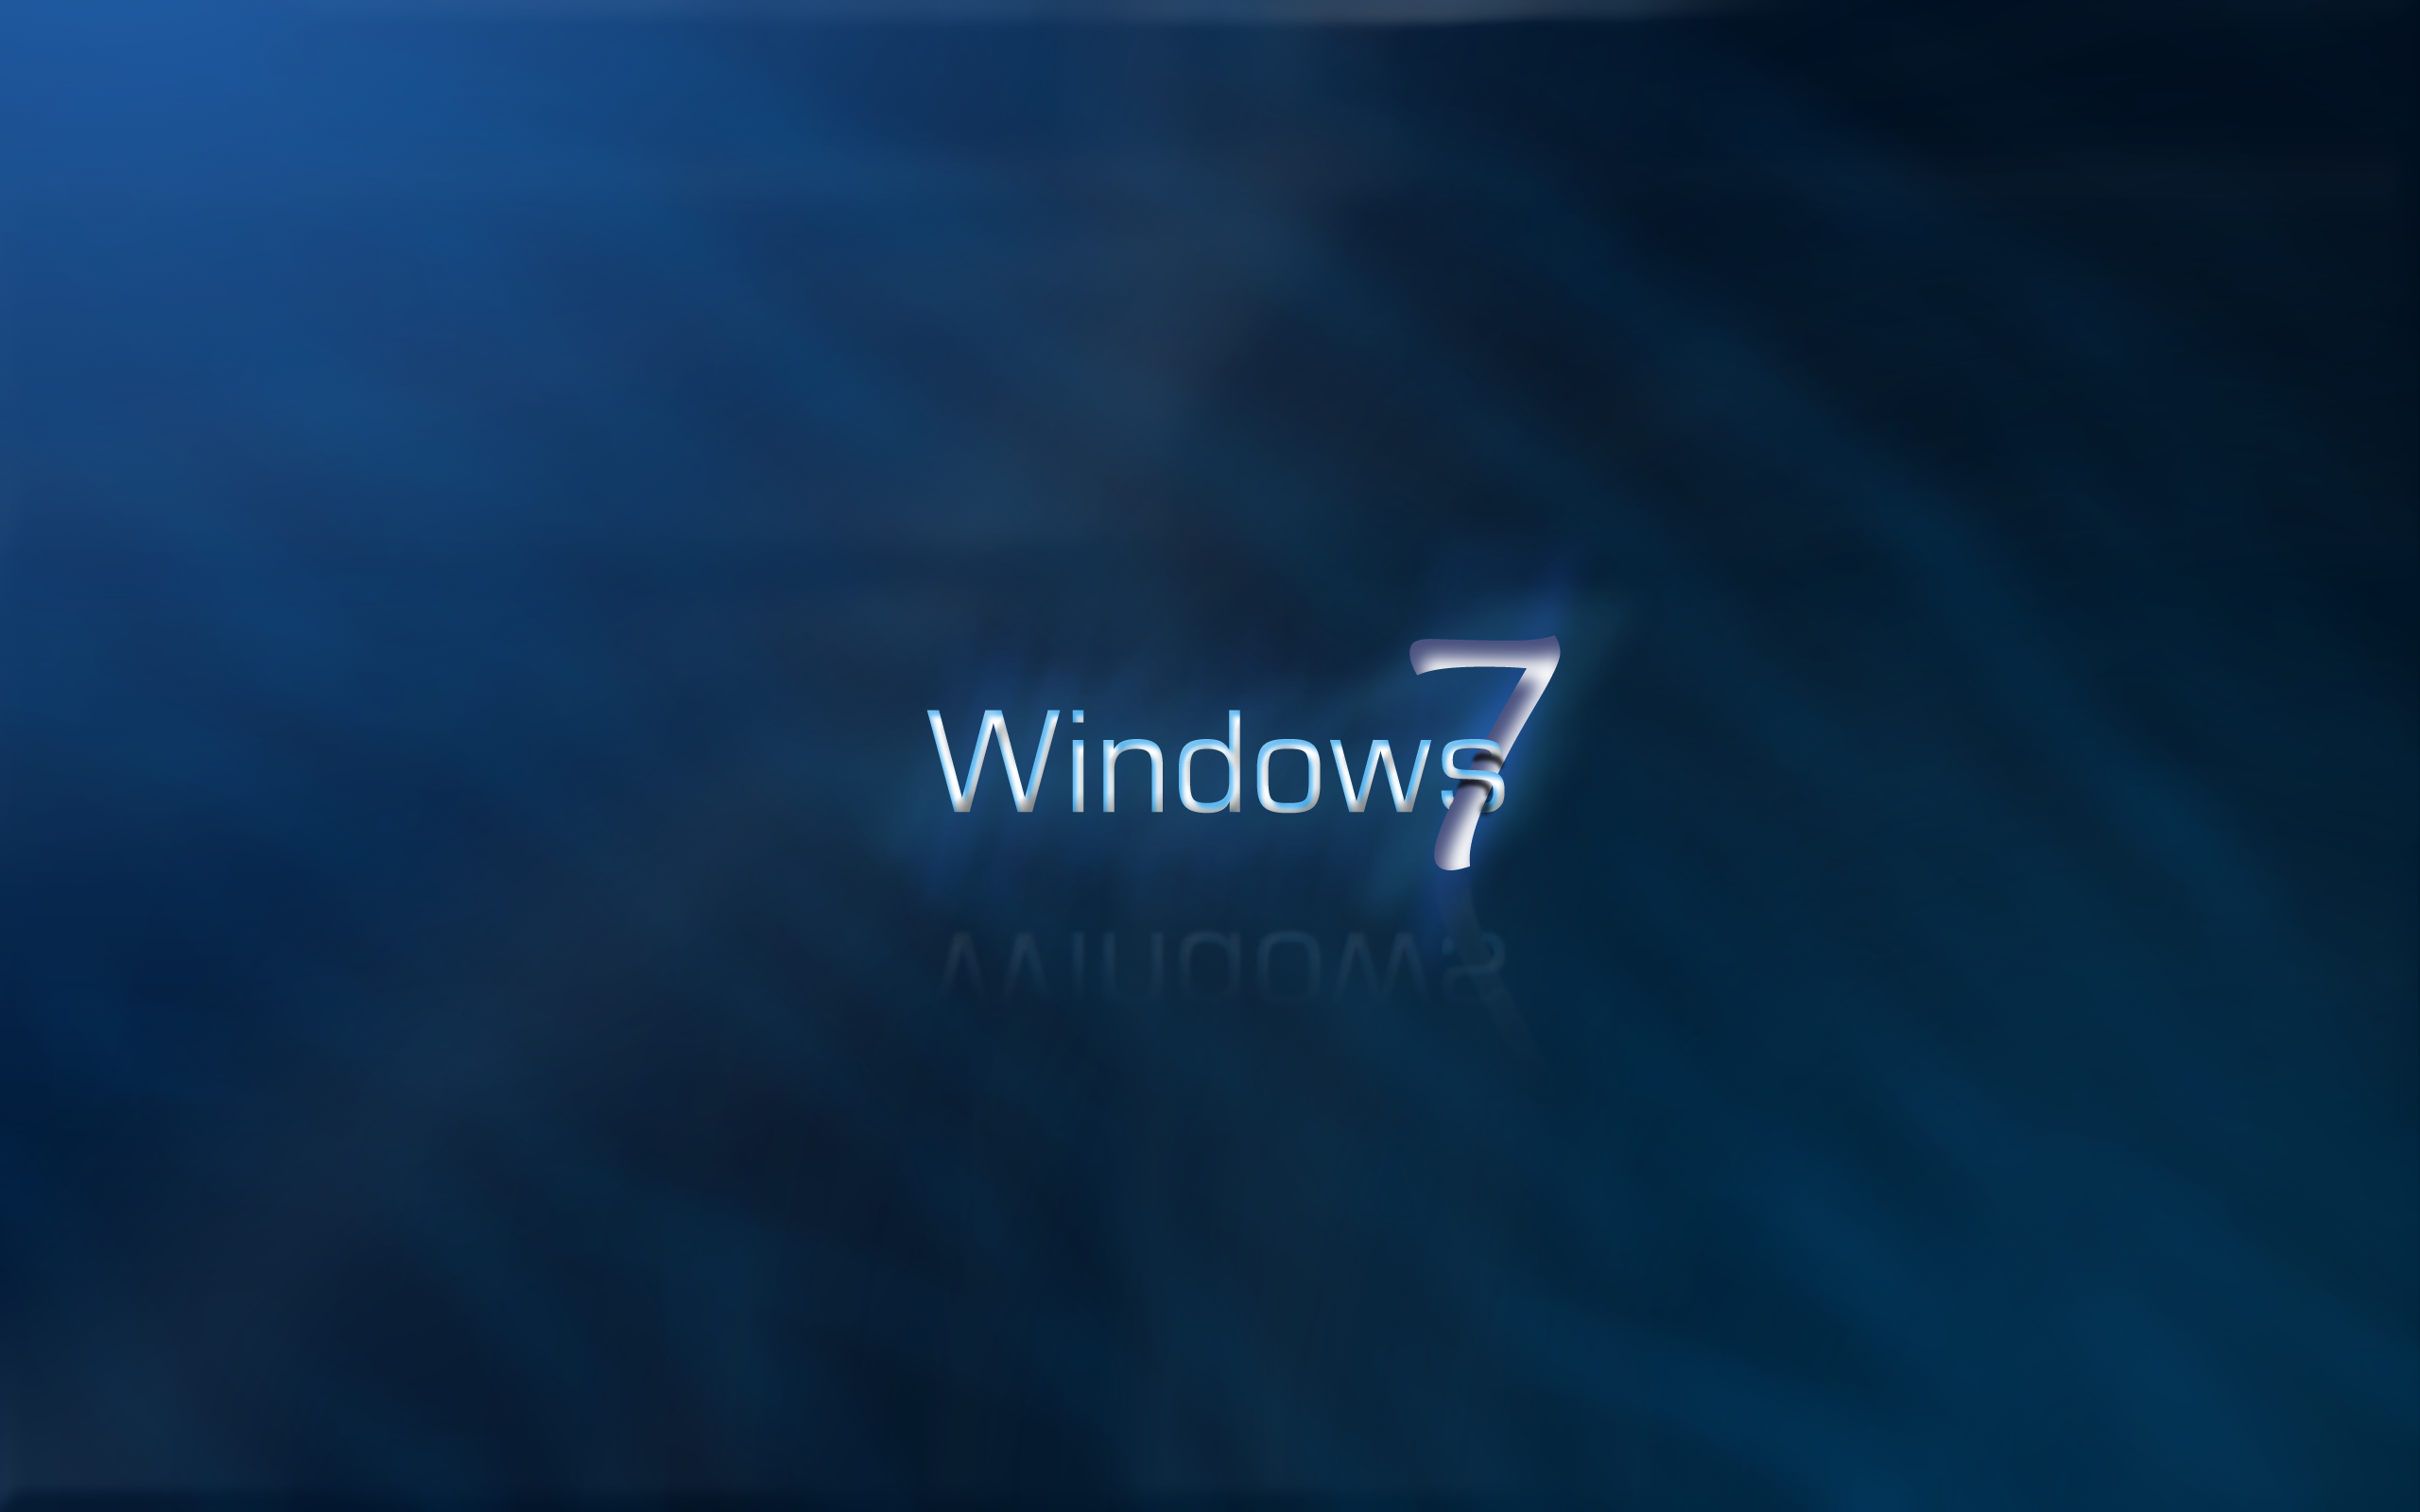 windows 7 aero wallpaper hd